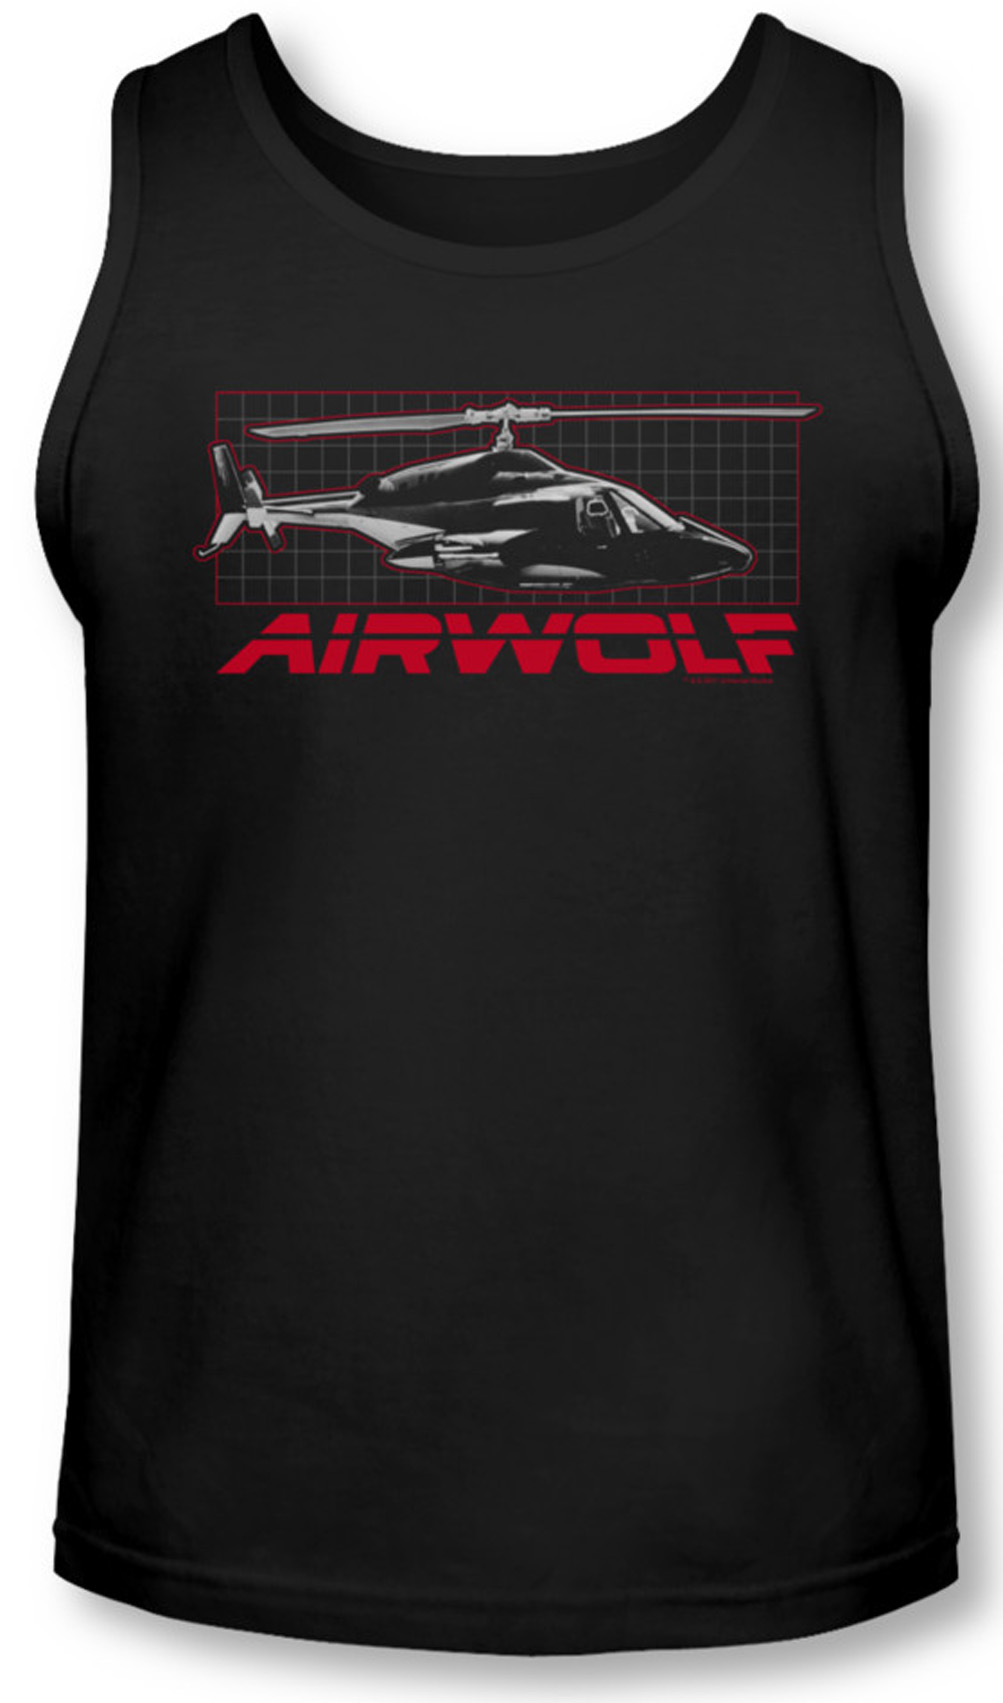 Airwolf Grid Tank Top Shirt Black Tee T Shirt Airwolf